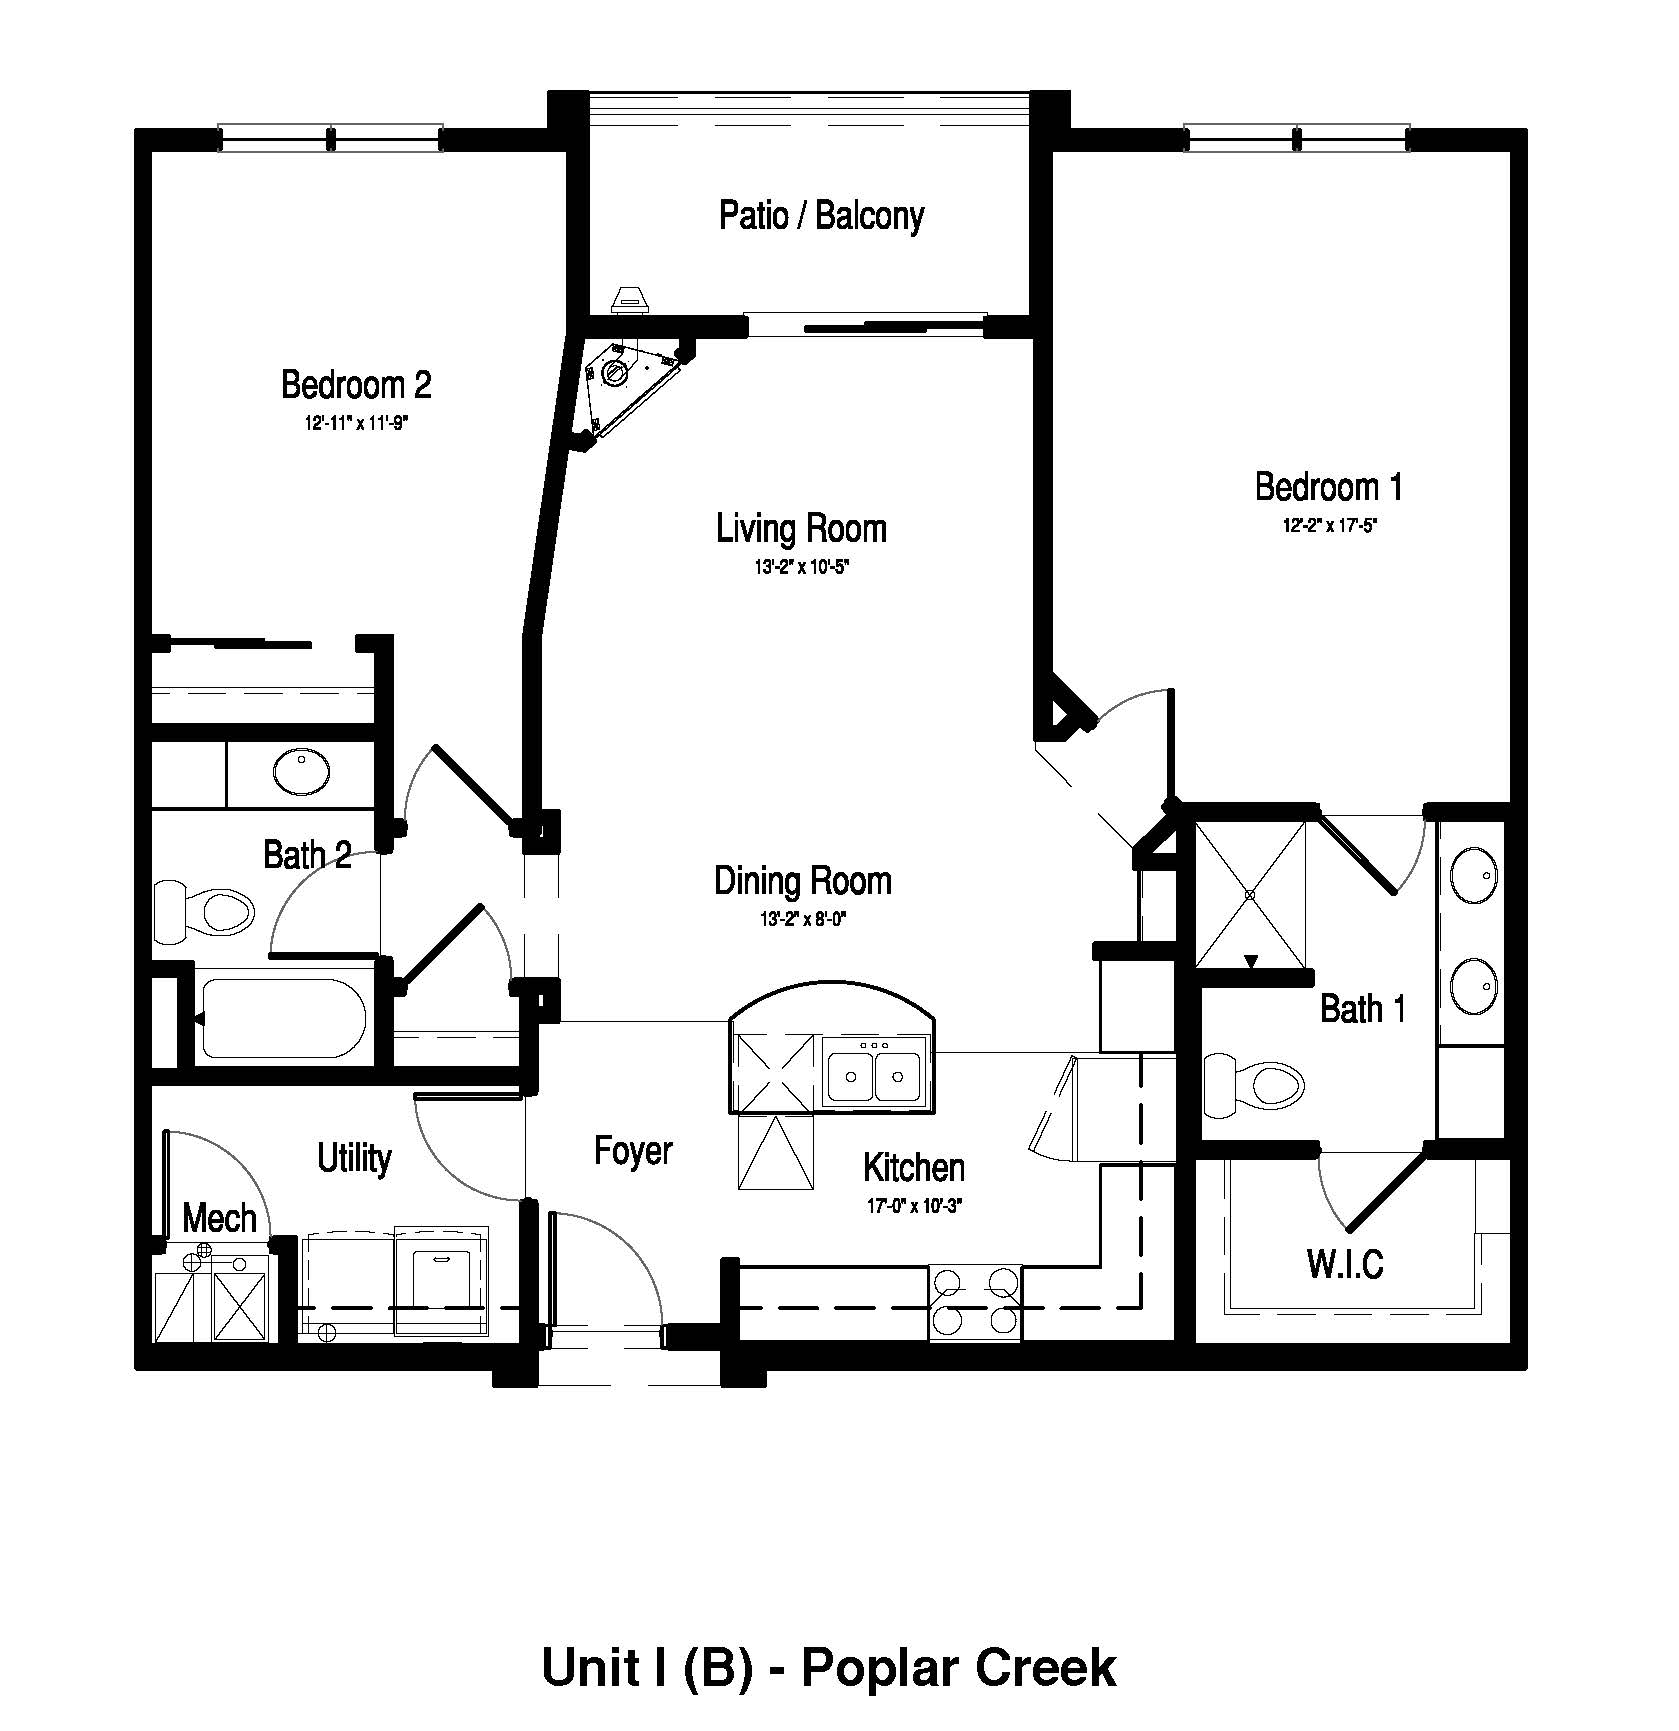 2 Bedroom,  2 Bath - 1,091-1,099 Sq. Ft. - Poplar Creek